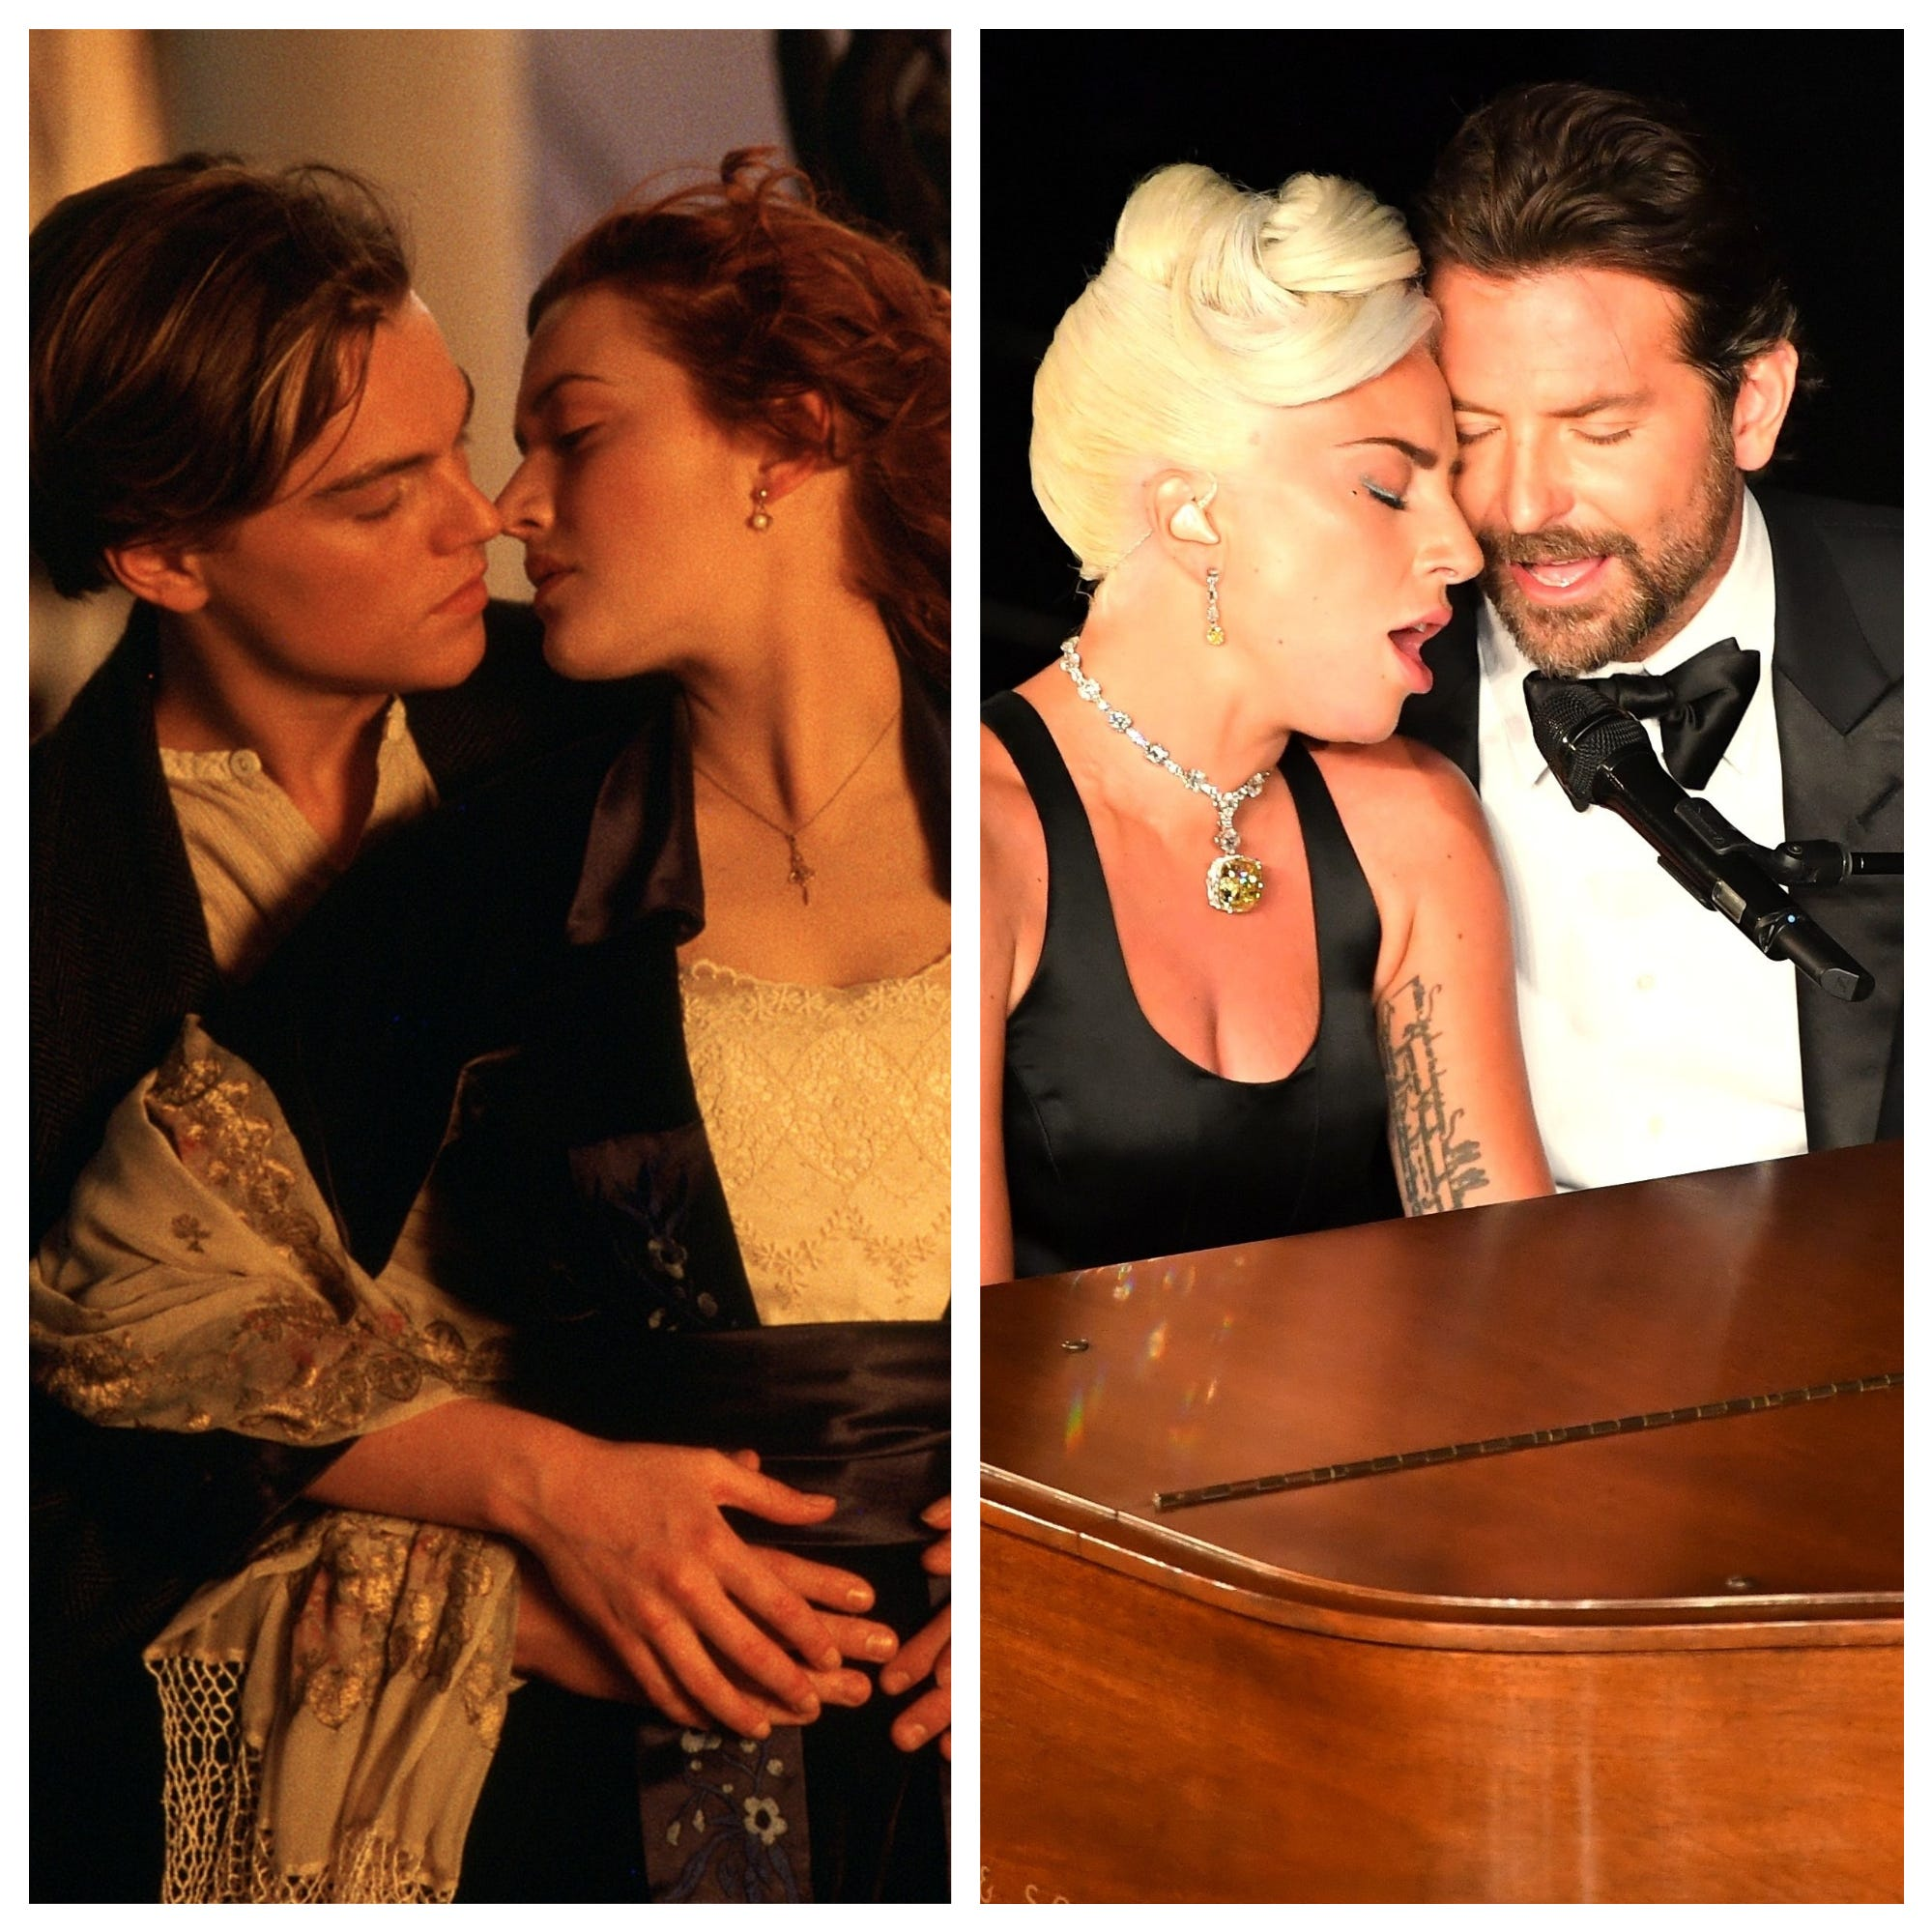 Already, Lady Gaga and Bradley Cooper's hot Oscar moment has reached Leo and Kate immortality